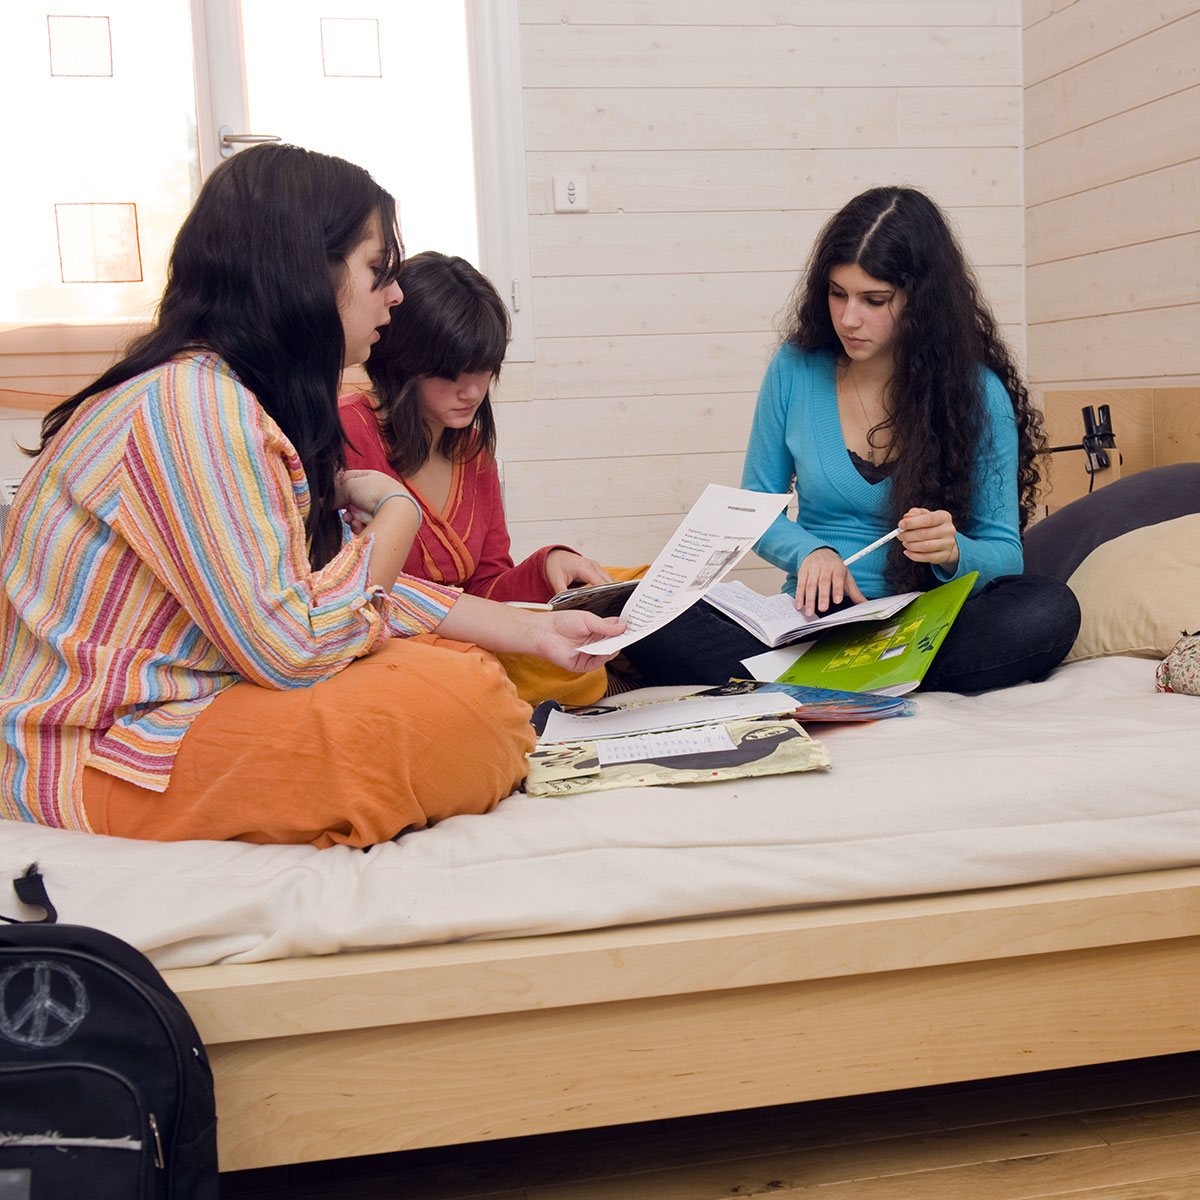 Image of three girls working together in their dorm room